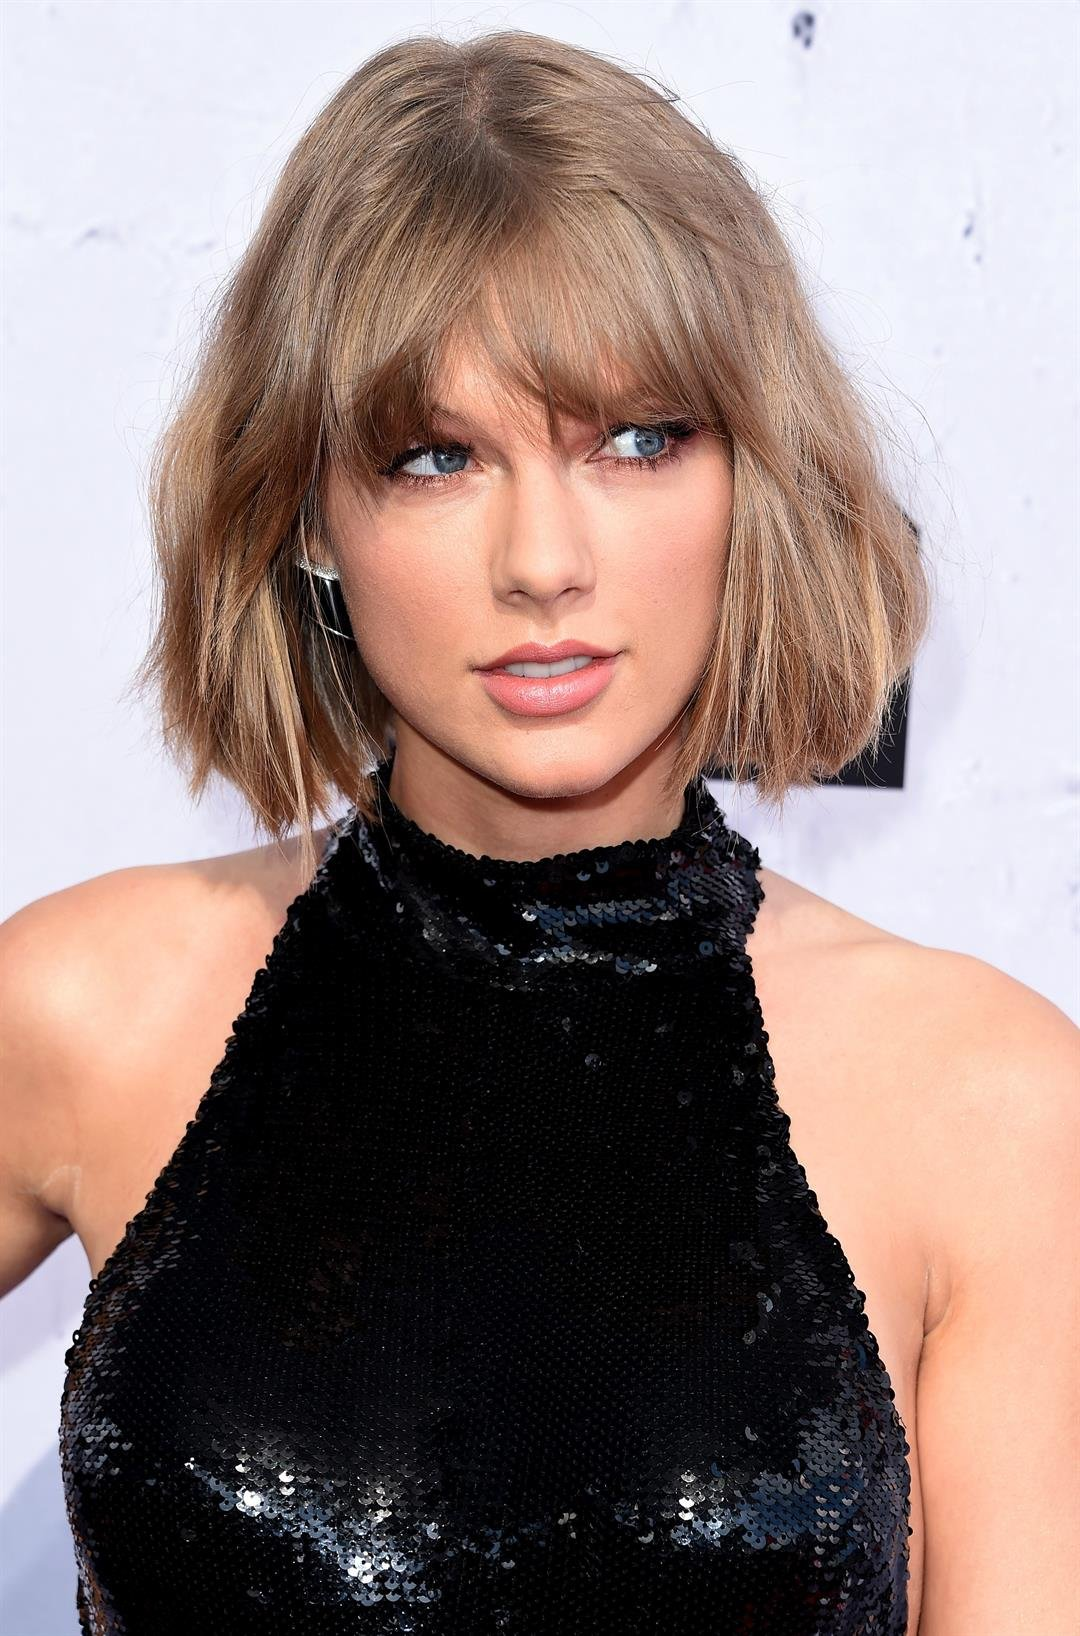 Credit: Frederick M. Brown/Getty Images/Turner  Taylor Swift at the 2016 iHeart Radio Music Awards. Swift posted the official tracklist to her new album, reputation, after it leaked on social media.